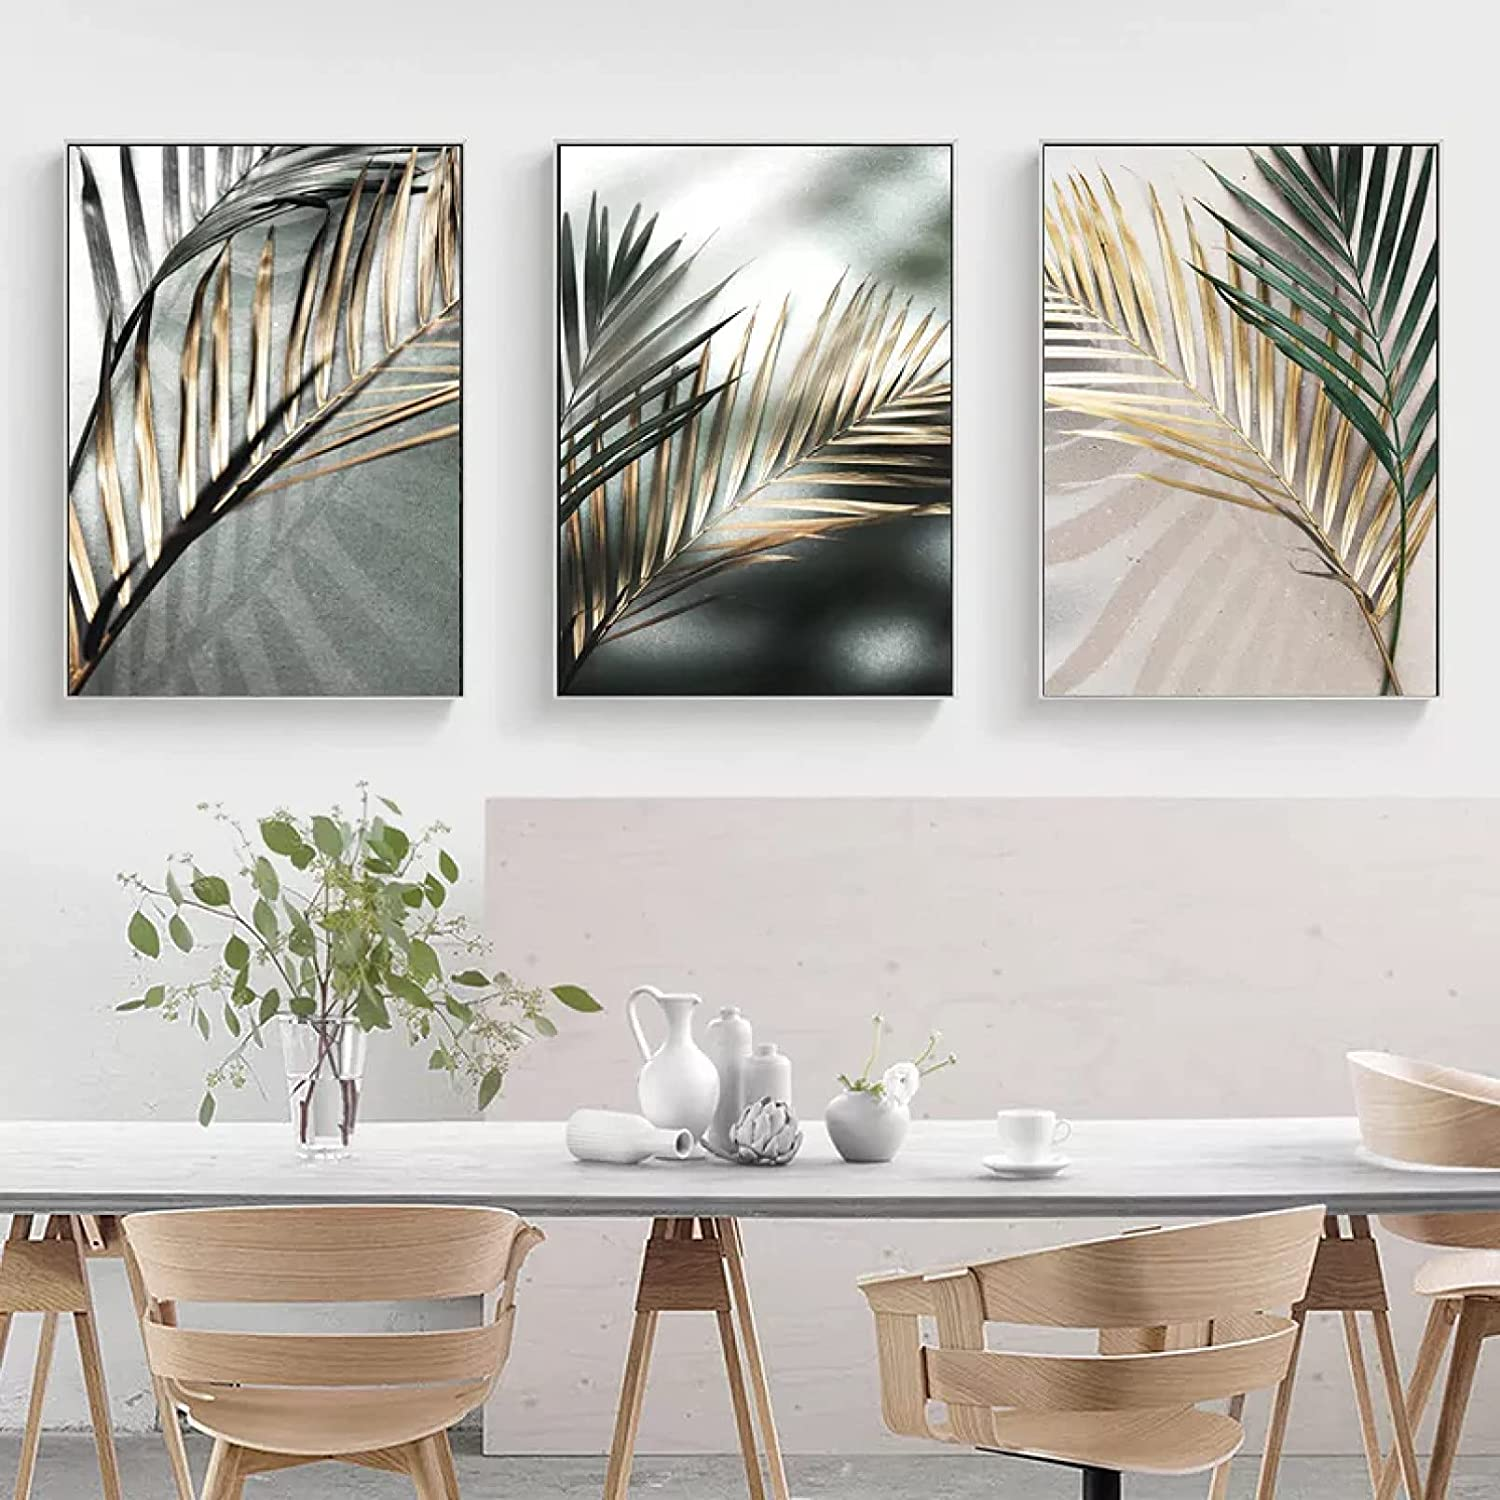 WACZJ 3 Pictures Print Easy-to-use Decorative Palm Leaf Canvas Golden Decora Limited time sale